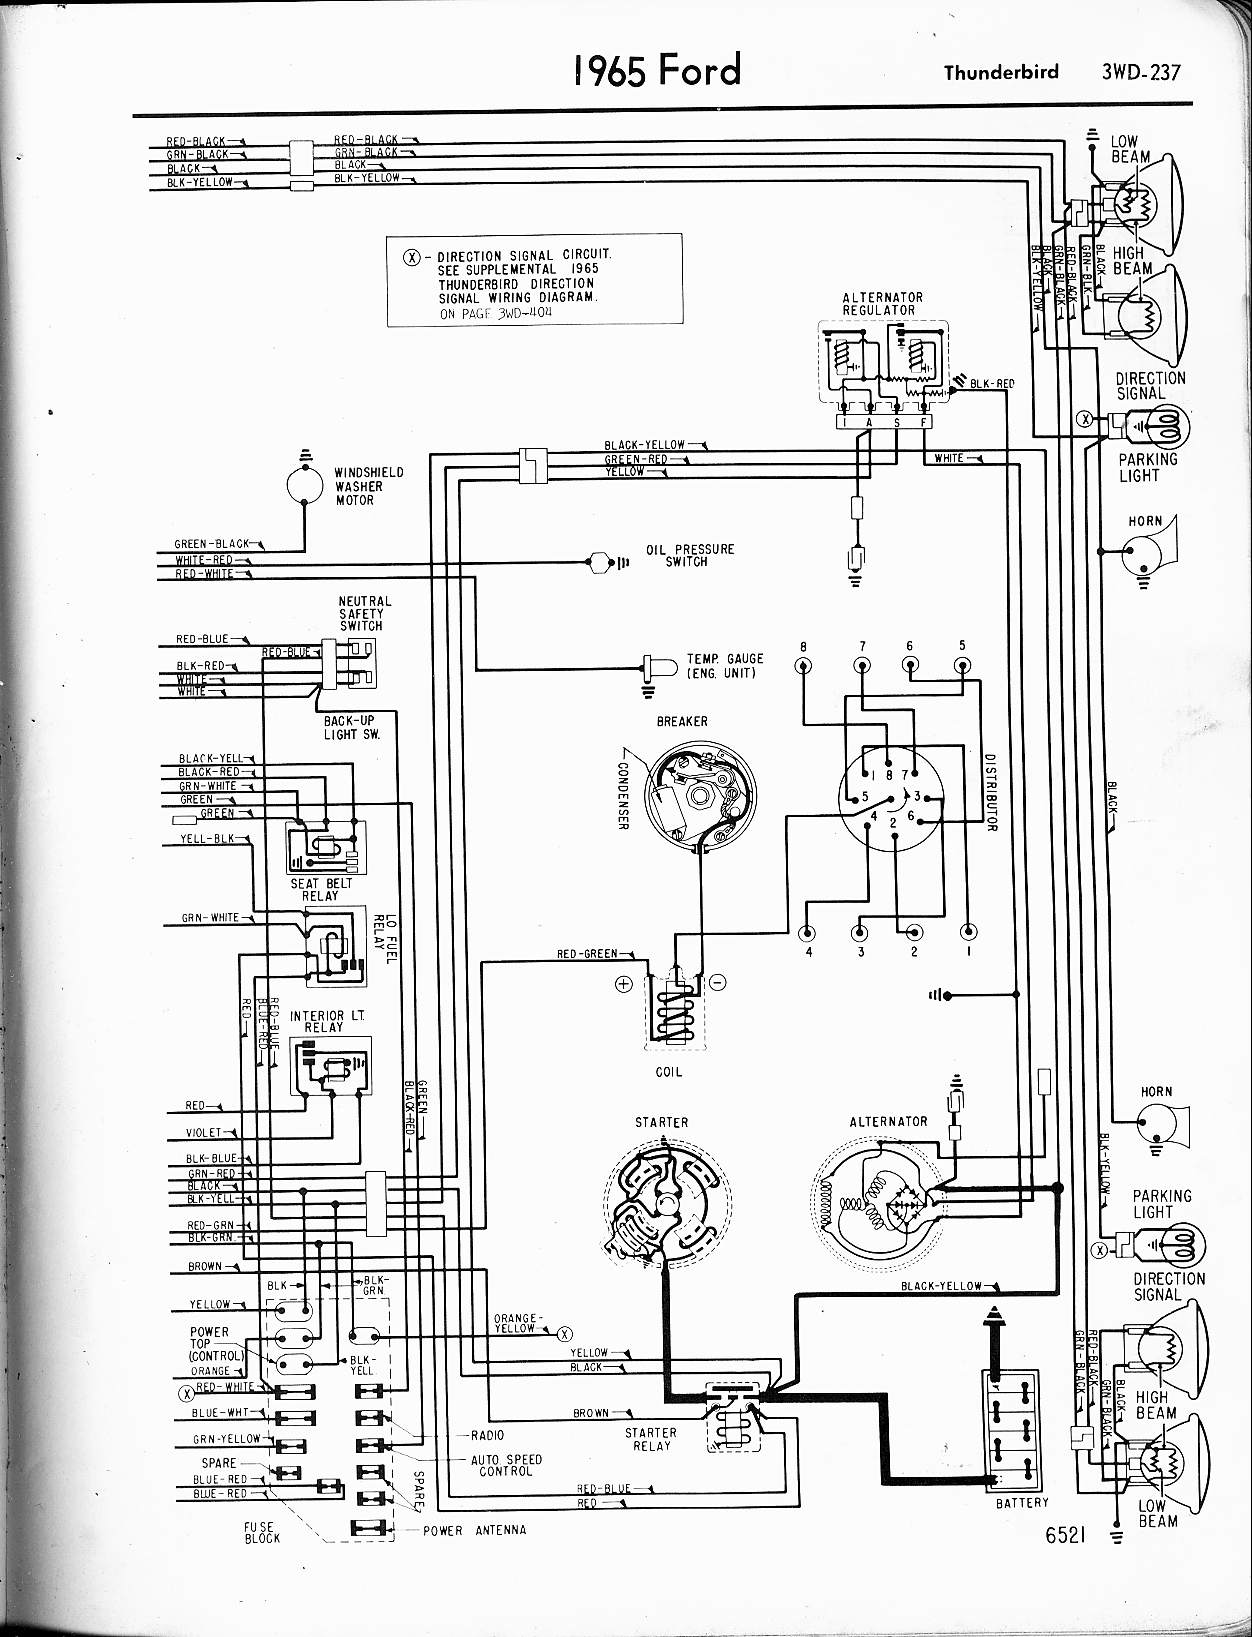 MWire5765 237 57 65 ford wiring diagrams 1964 thunderbird wiring diagram at bayanpartner.co